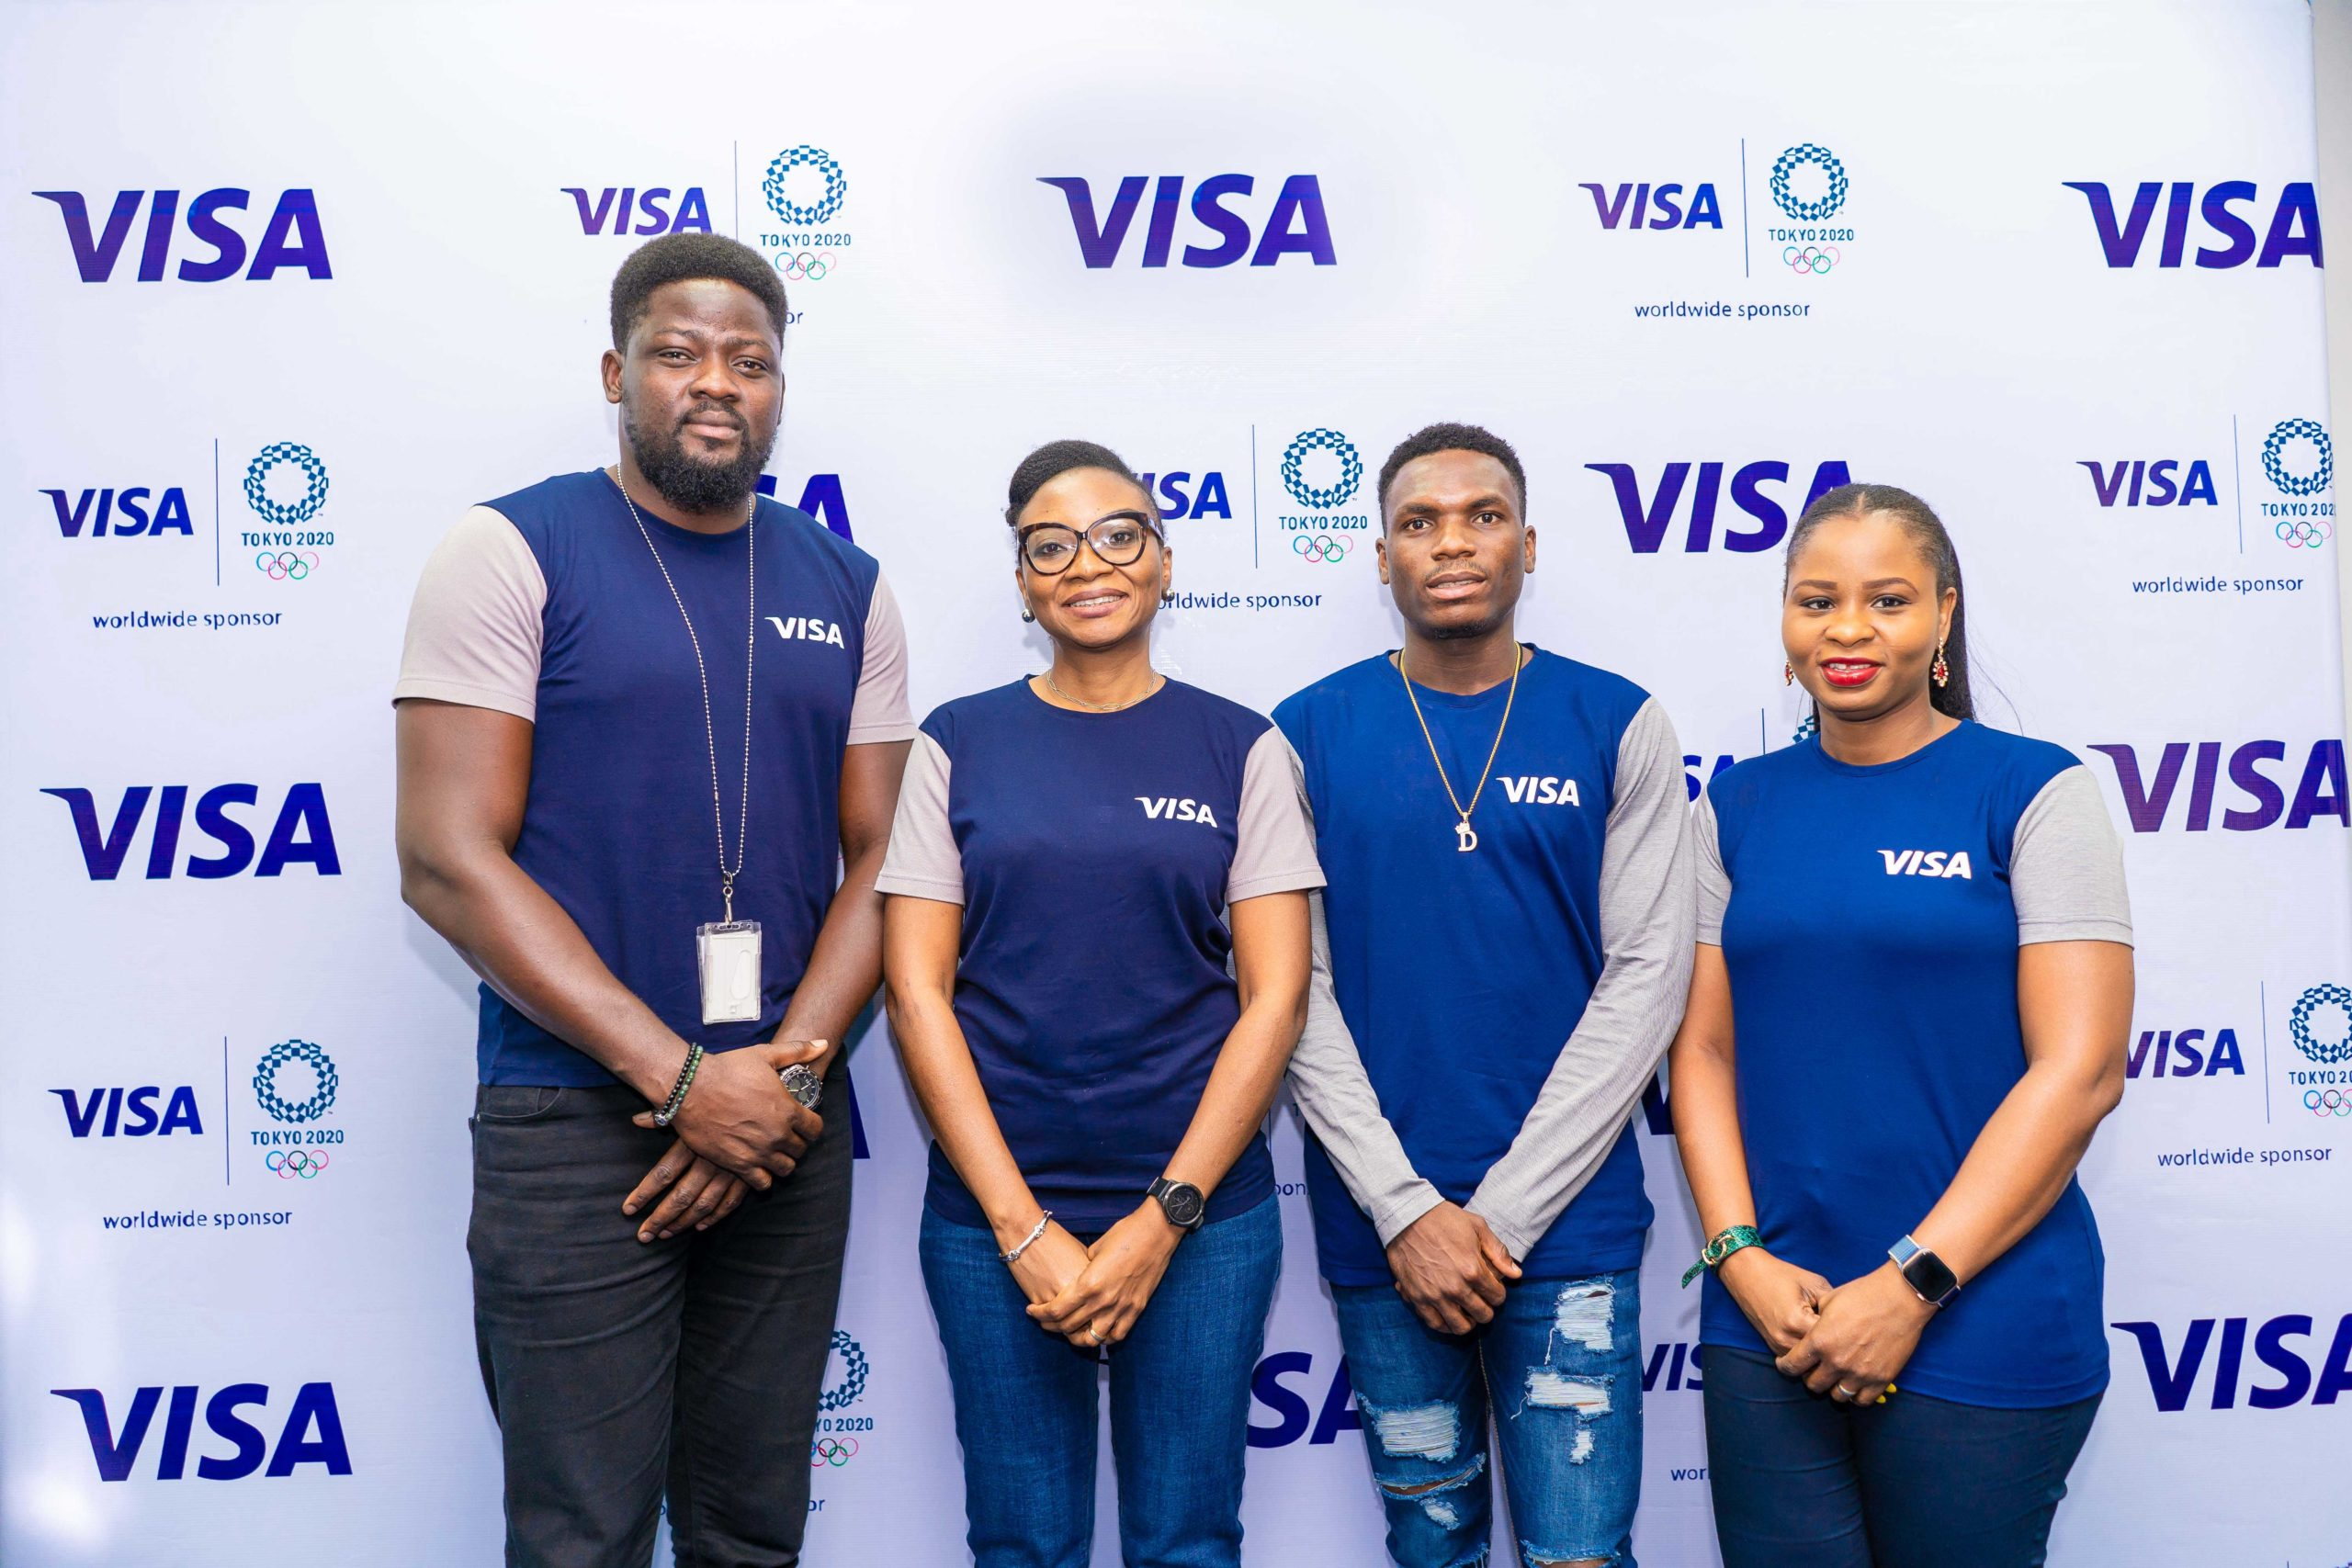 Team Visa Welcomes Nigerian Track and Field Sprinter Divine Oduduru to their Tokyo 2020 cohort - Brand Spur